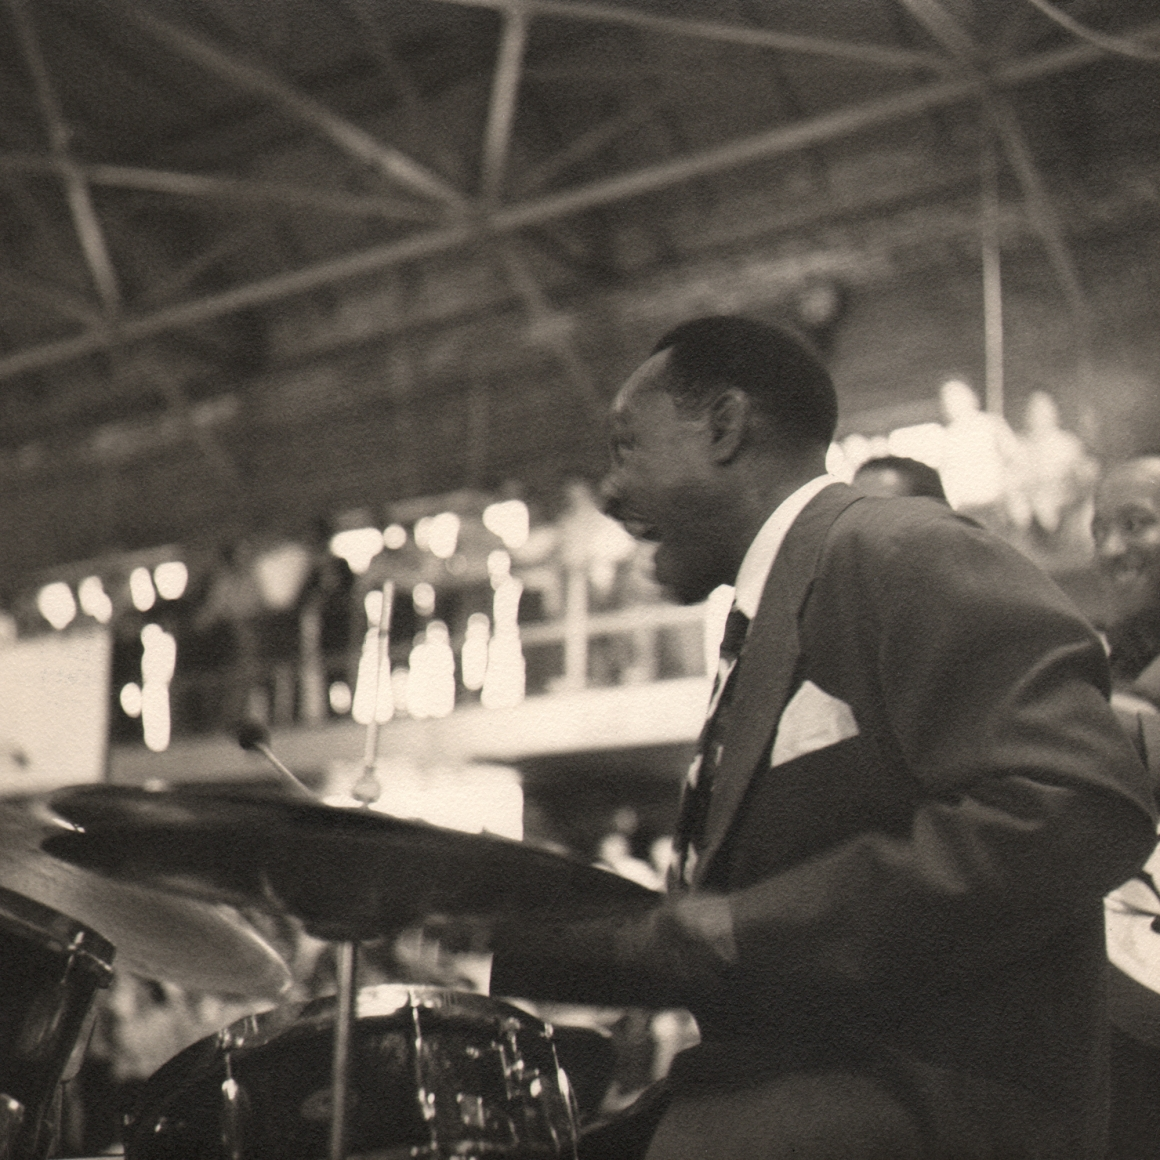 Bob Willoughby, Lionel Hampton, 1956. Subject is seated at a drumset on the right side of the frame, facing left and smiling.